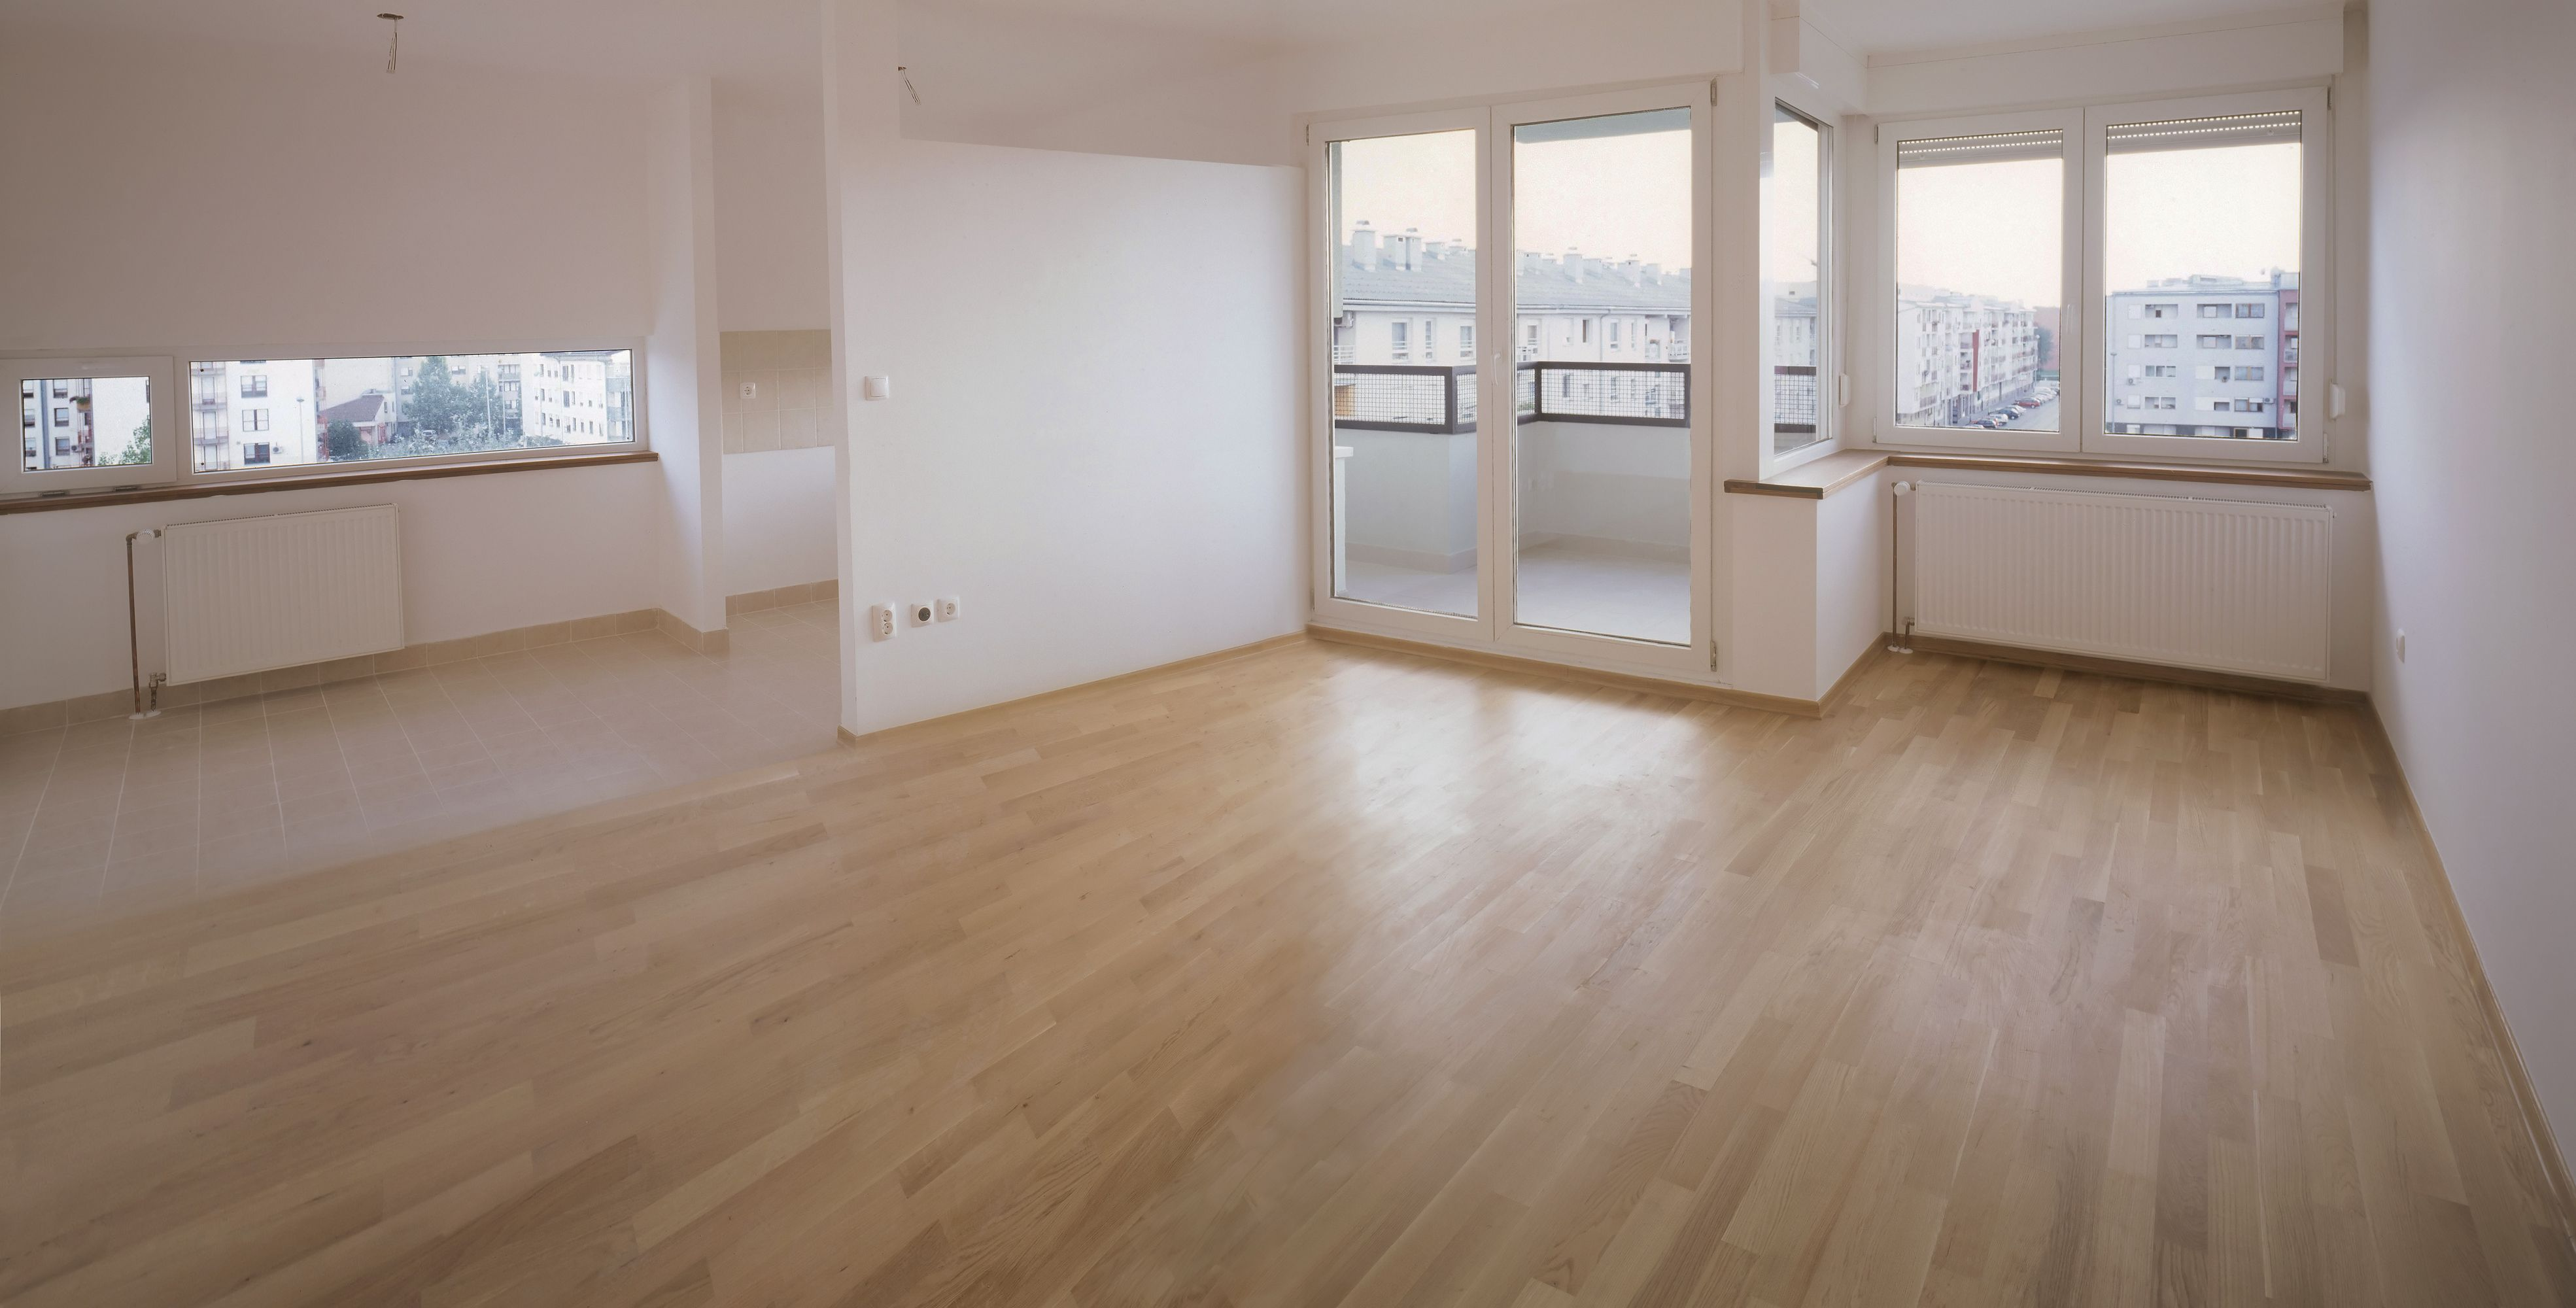 Comparison of Ceramic Tile Vs. Laminate Wood Flooring